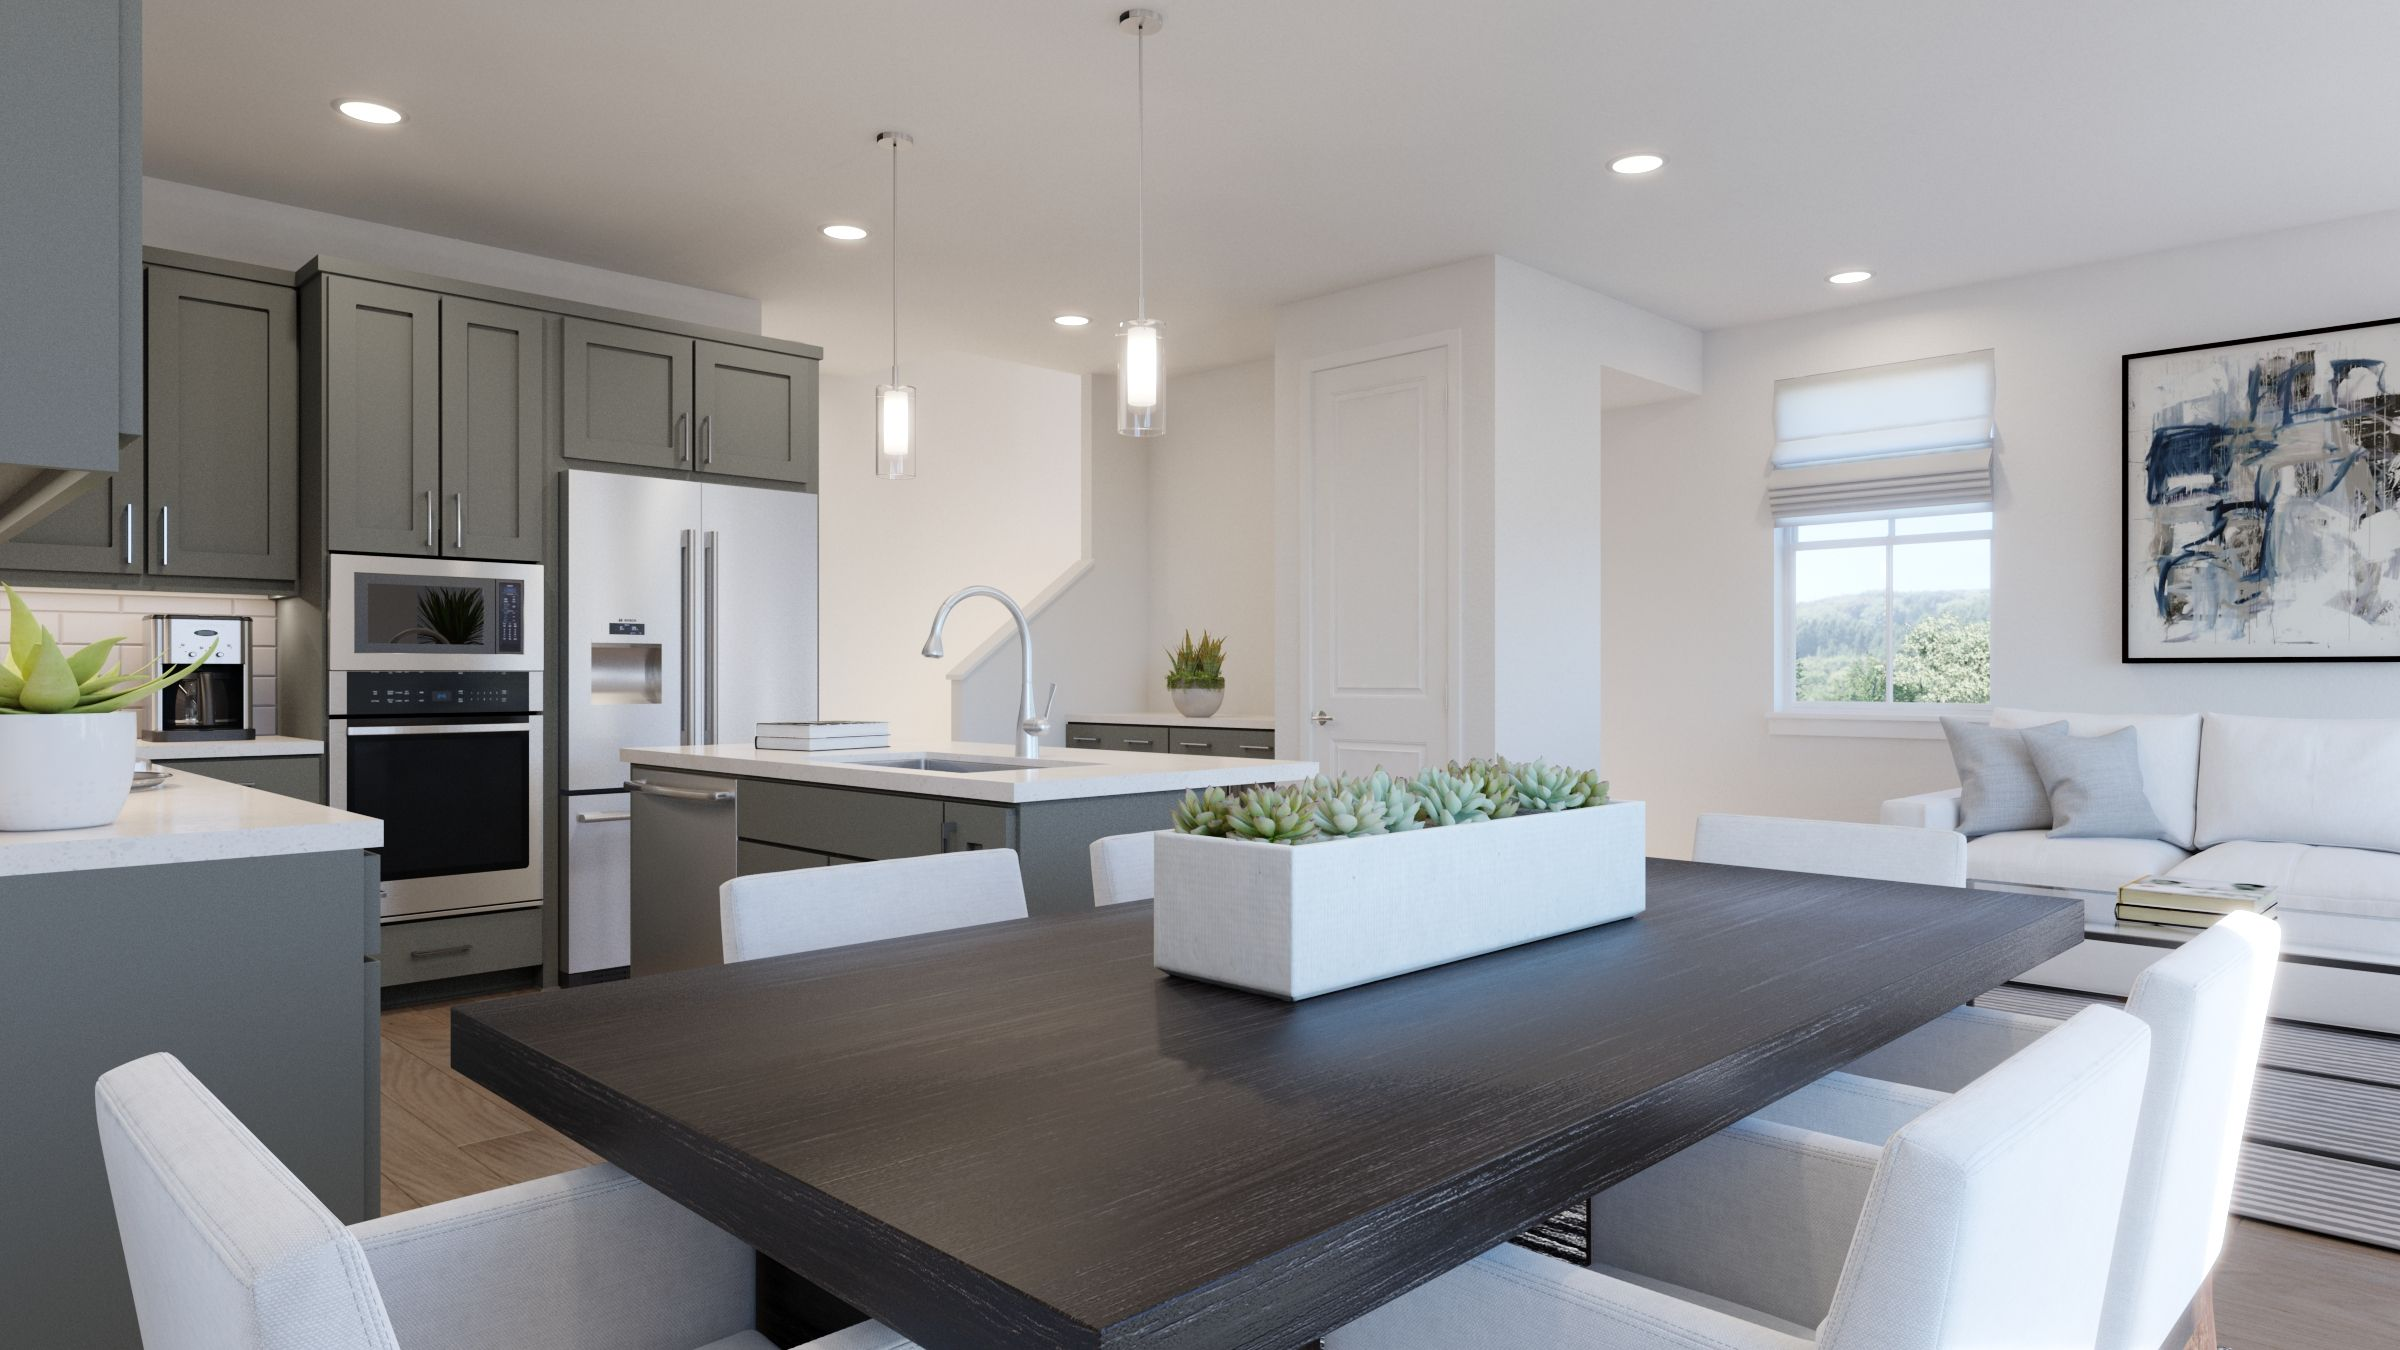 Kitchen featured in the PLAN TWO By SummerHill Homes in San Jose, CA